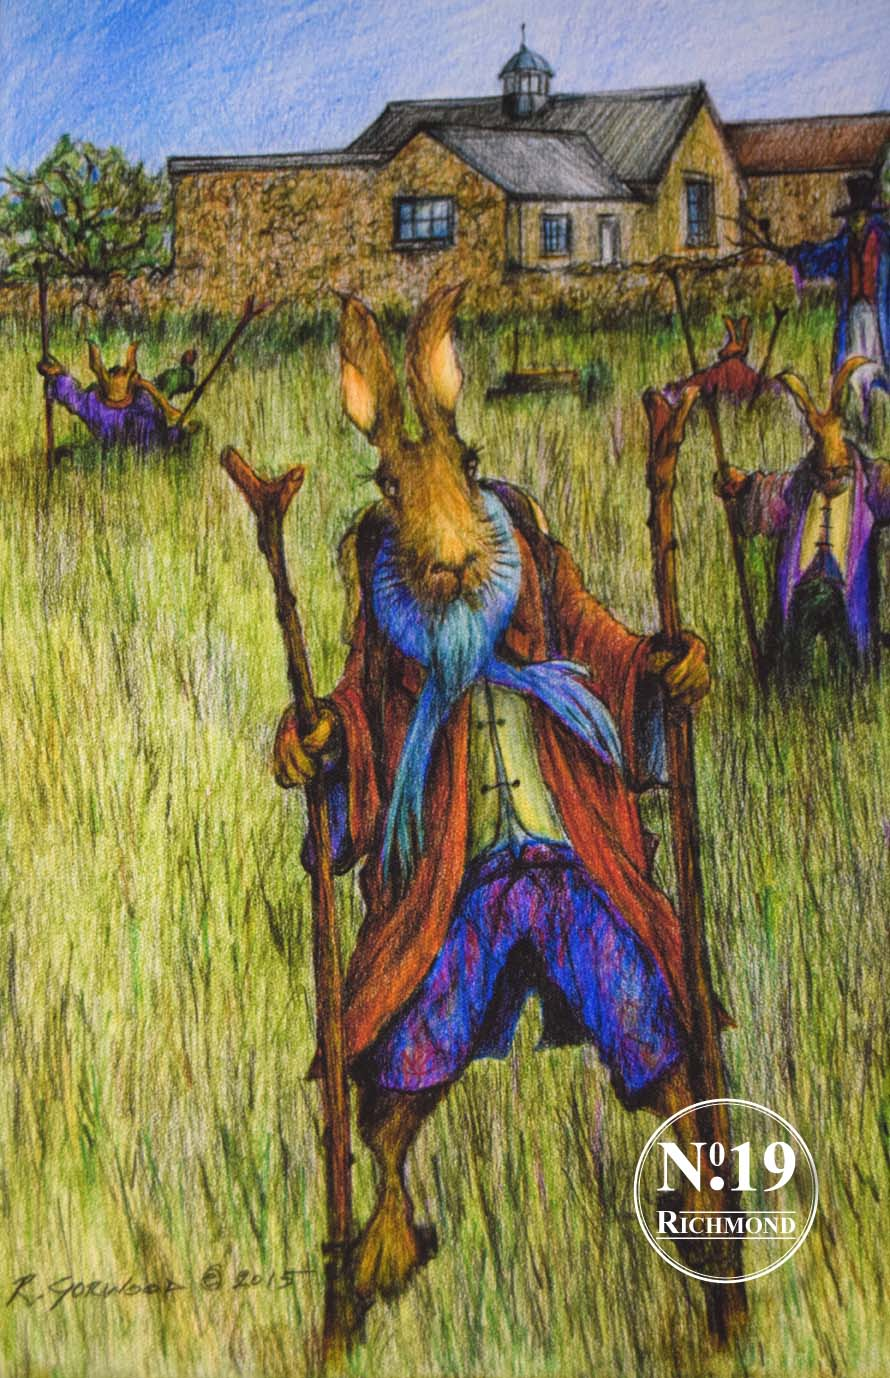 Print on Canvas 'Hare on Stilts' £55